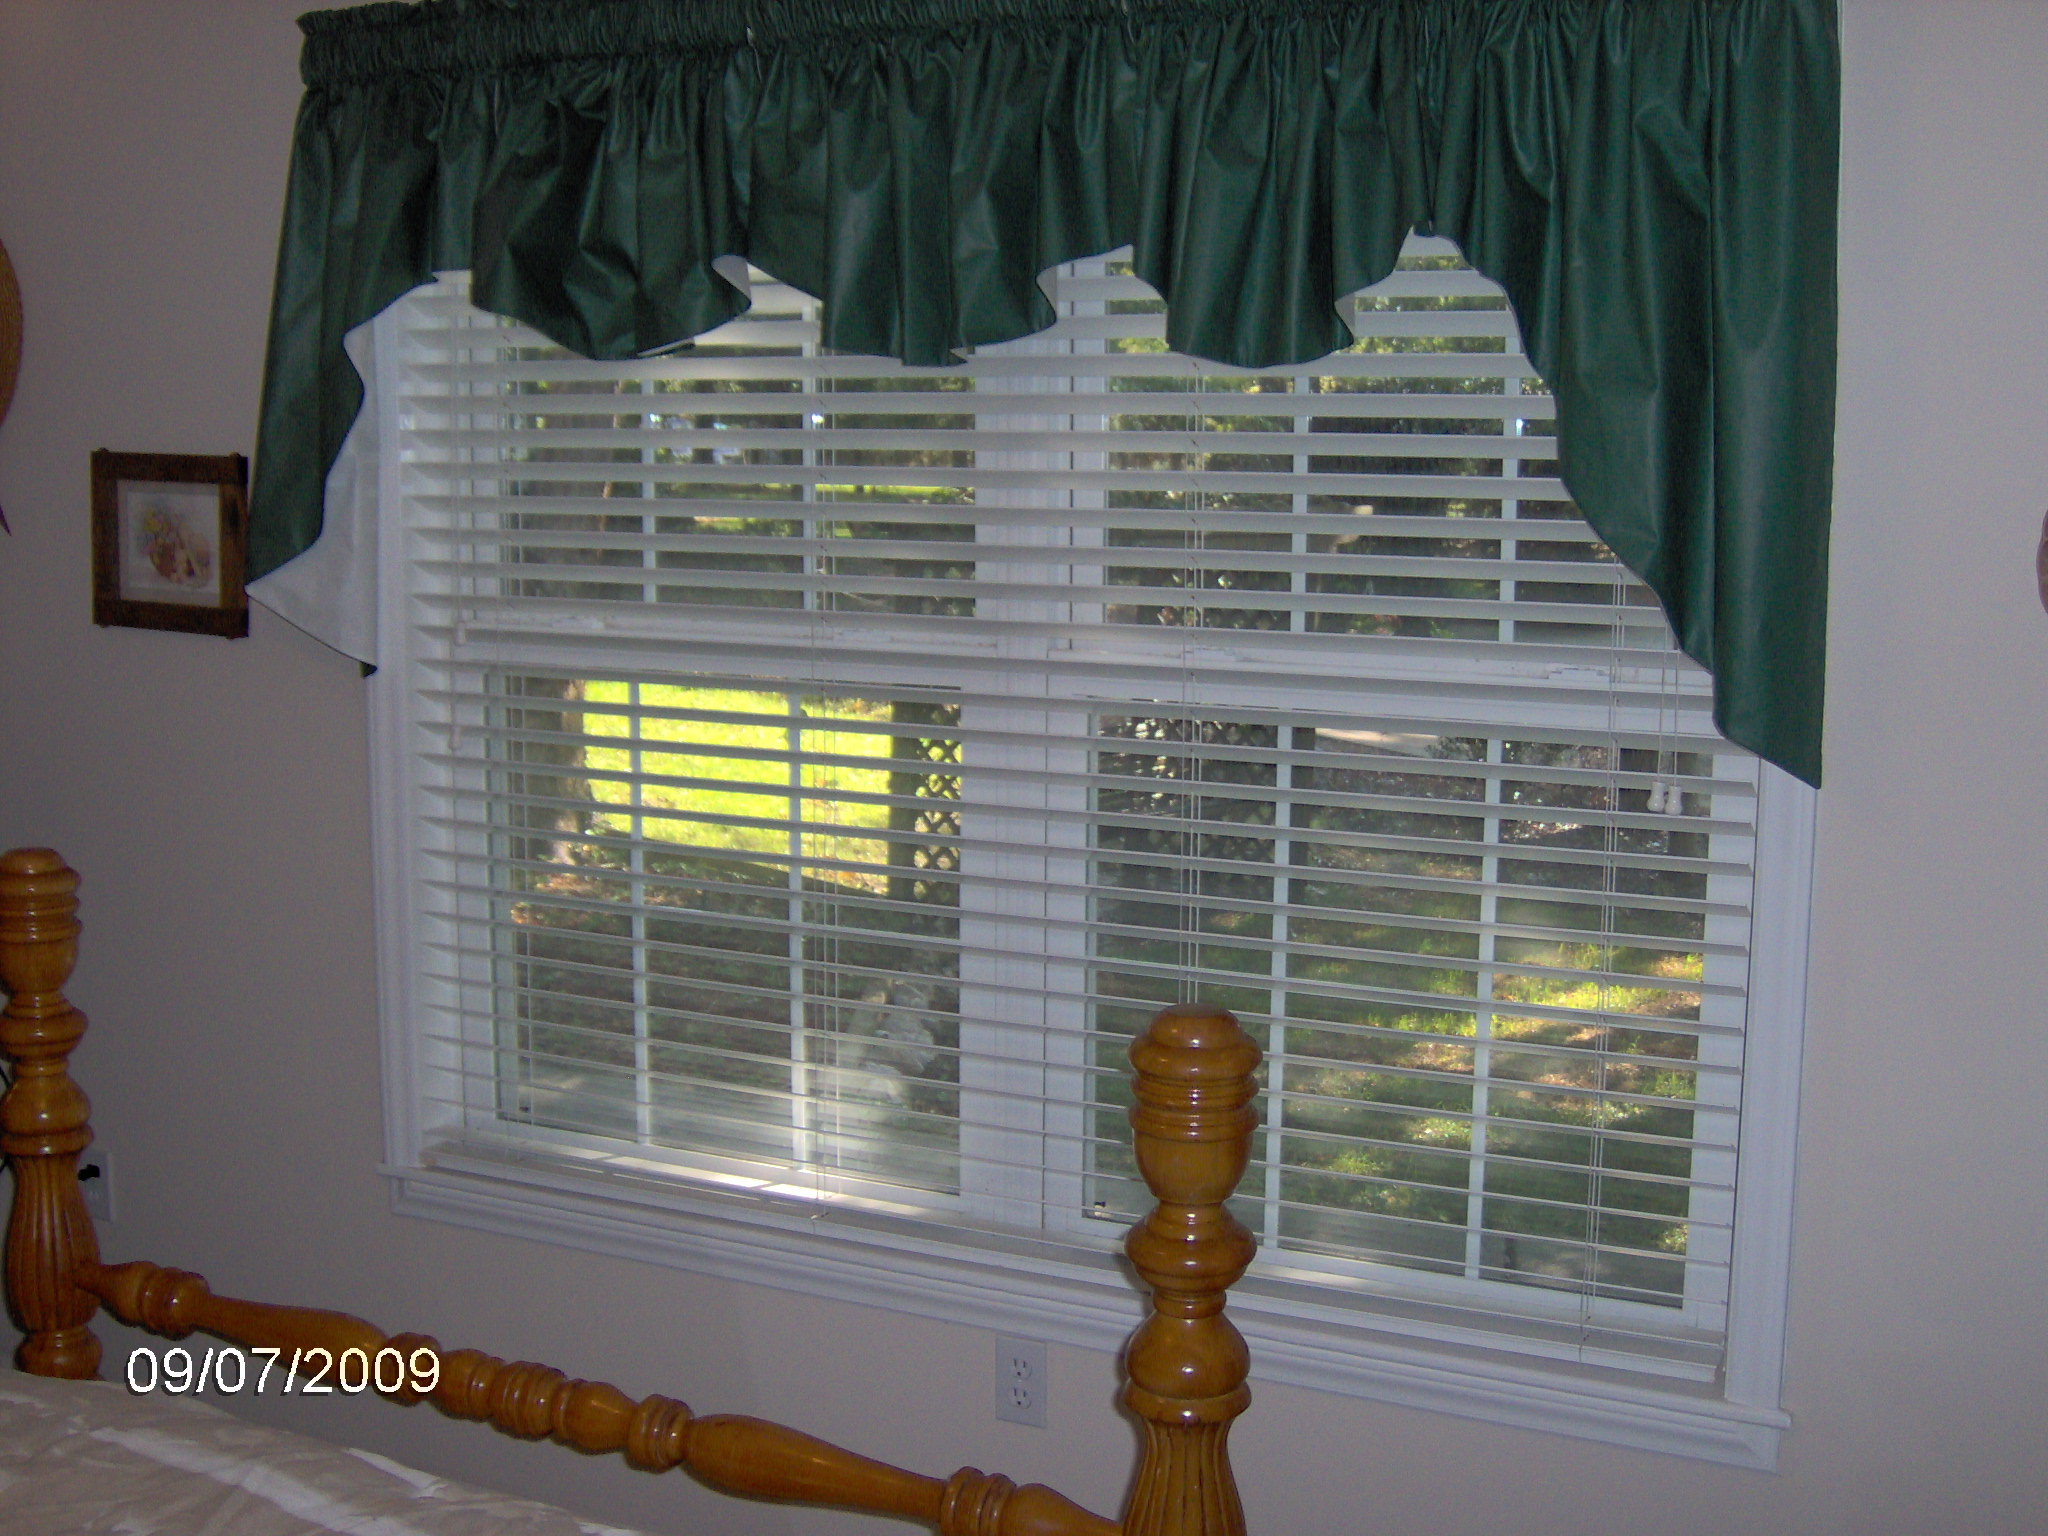 lift oak windows treatments window depot blinds blind dark faux textured wood n b for perfect the treatment home decor